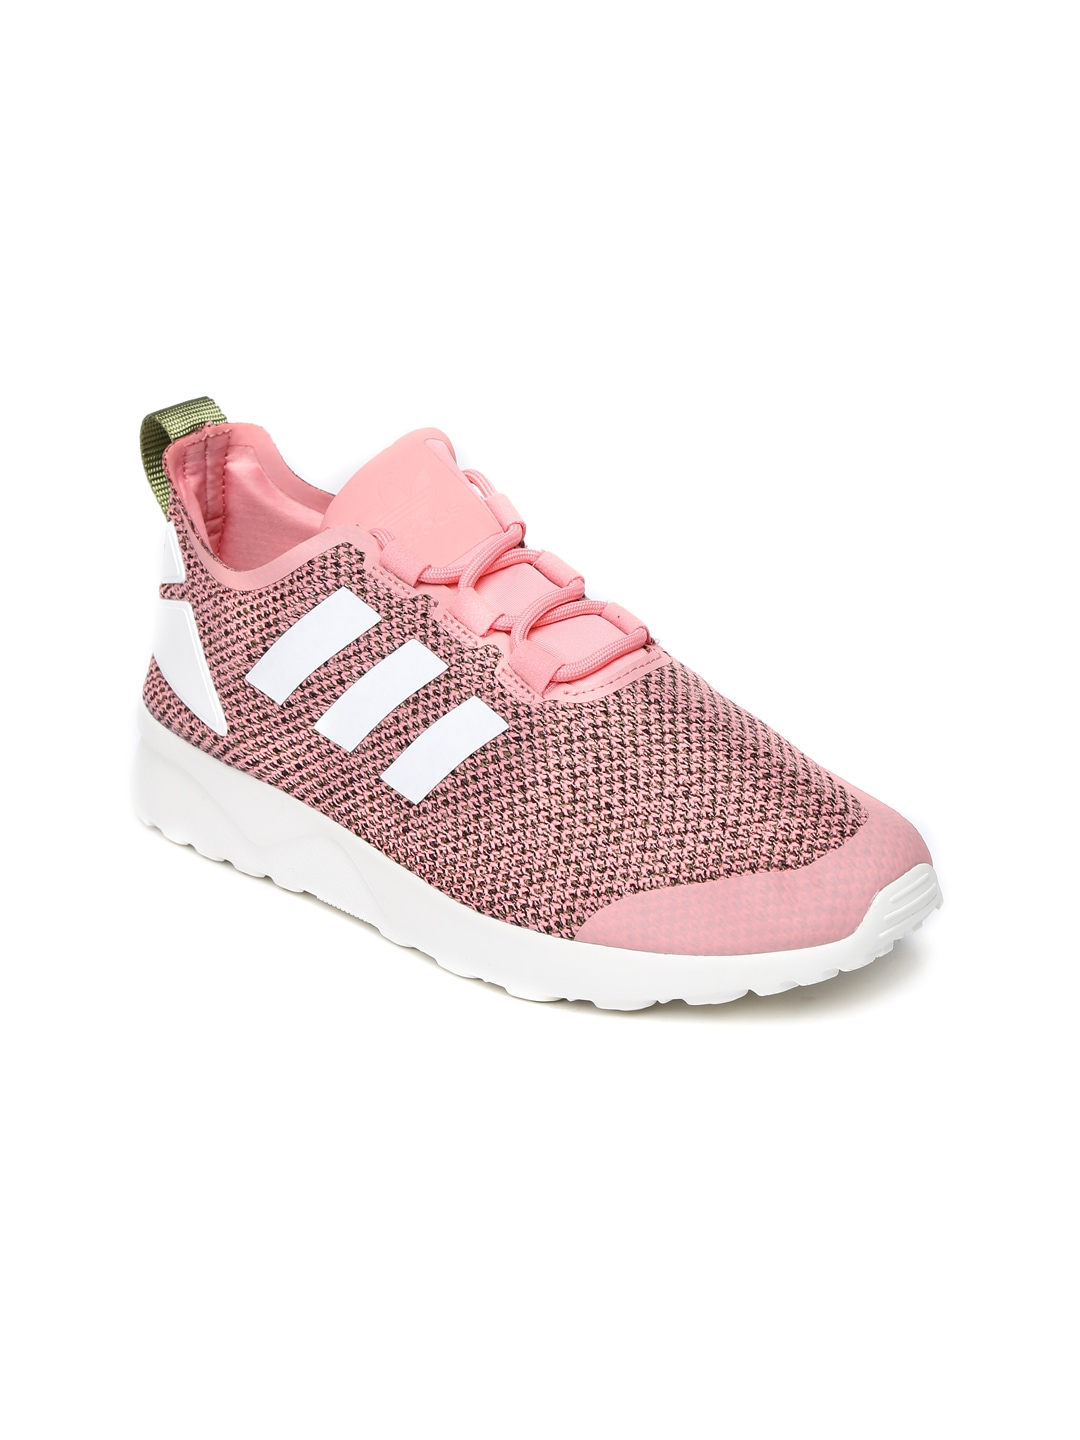 adidas zx flux adv verve pink. Black Bedroom Furniture Sets. Home Design Ideas